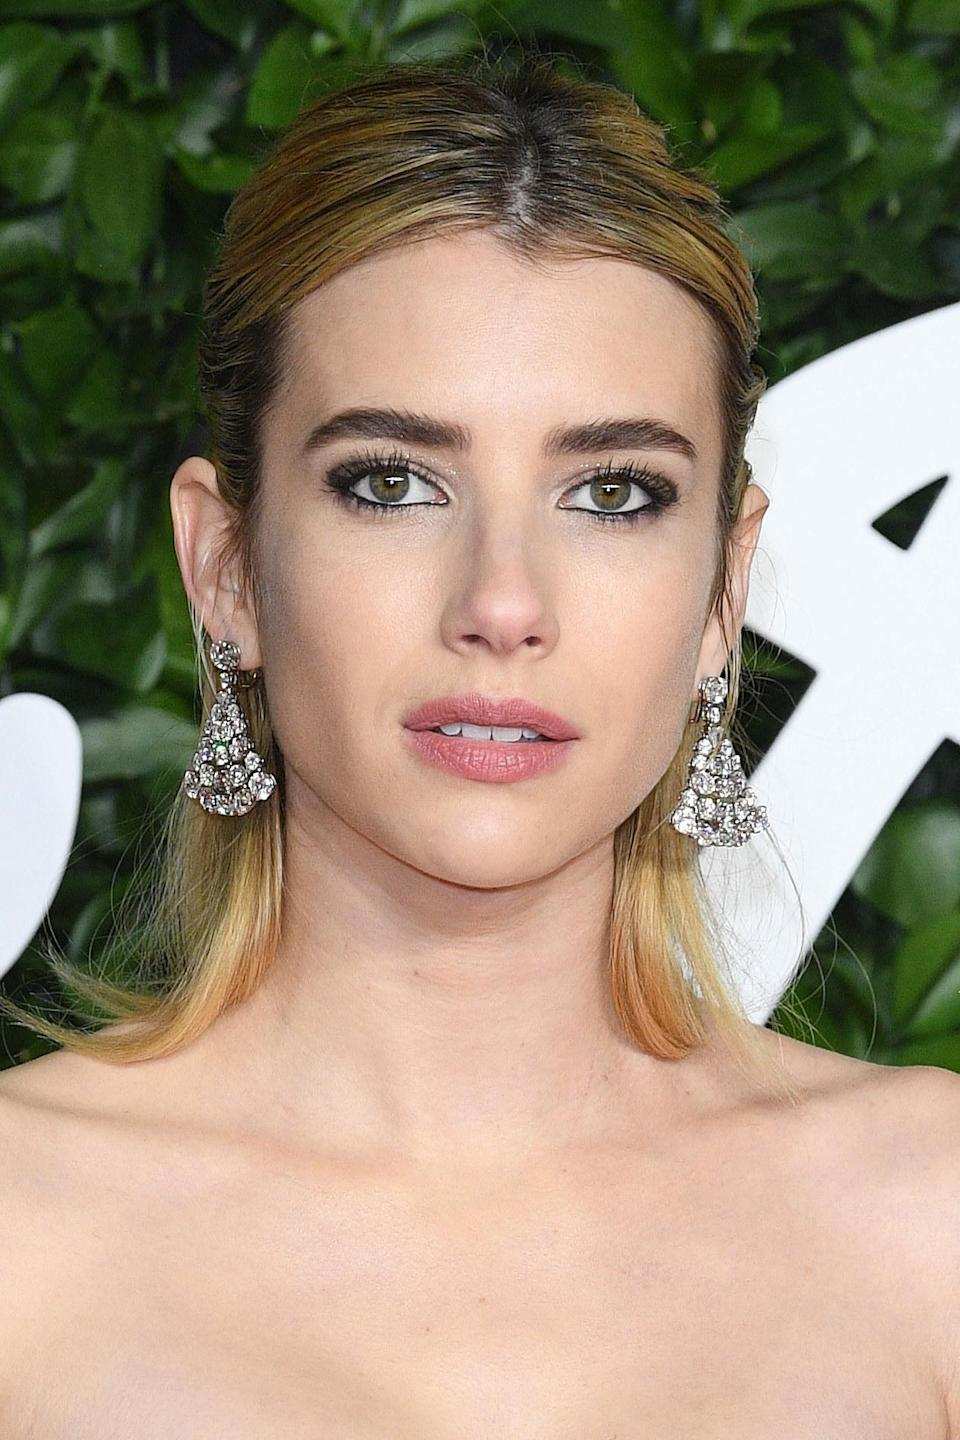 Emma Roberts is pictured at The Fashion Awards in London in 2019